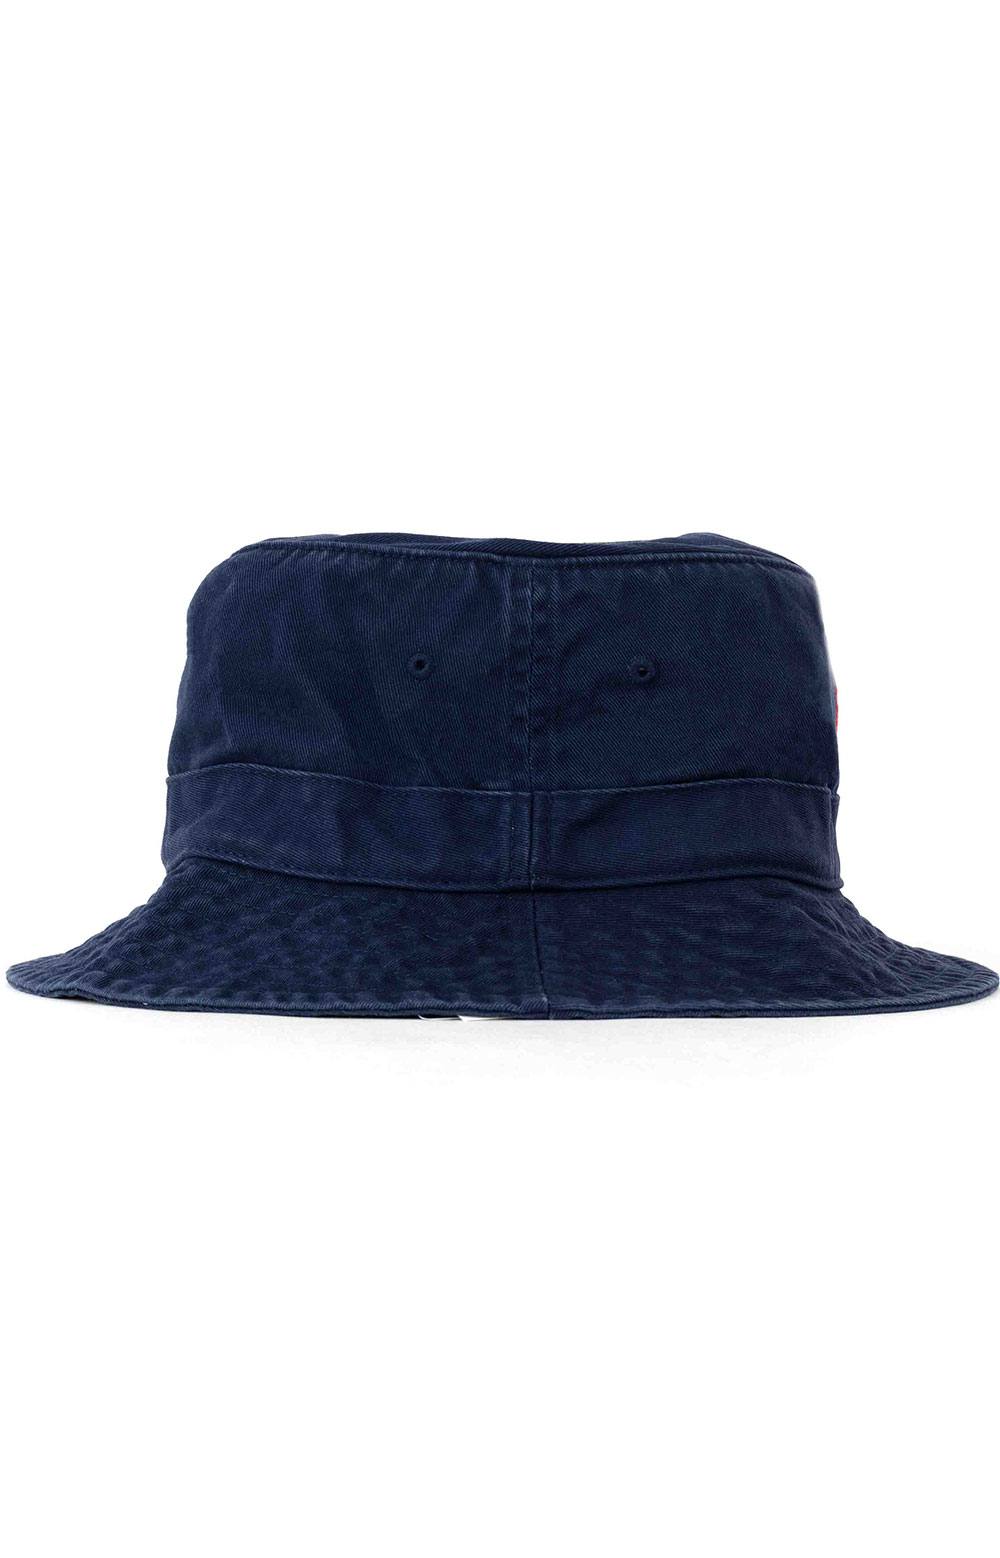 Loft Bucket Hat - Blue  3